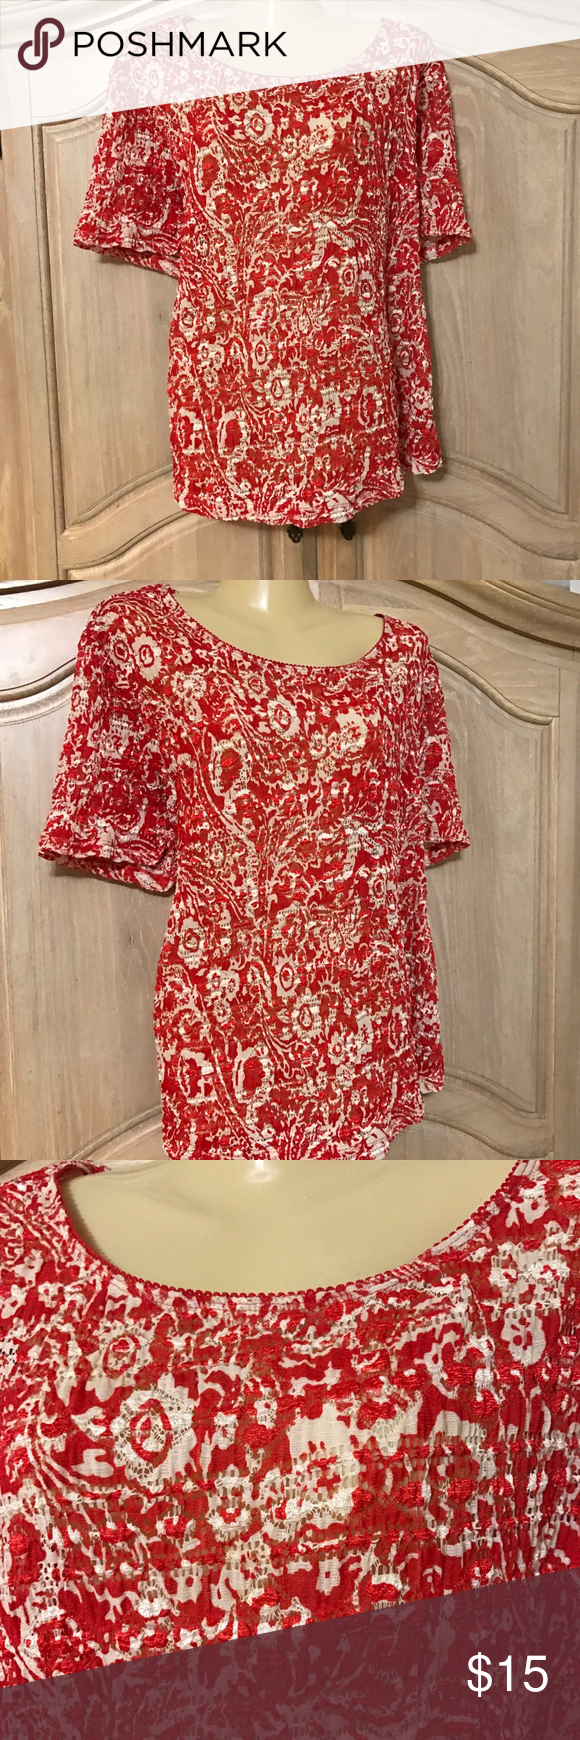 Designer east 5th blouse Blouse with short sleeves and round neckline stamped in red and white size 2 xl   80% polyester 20% spandex East 5th Tops Blouses